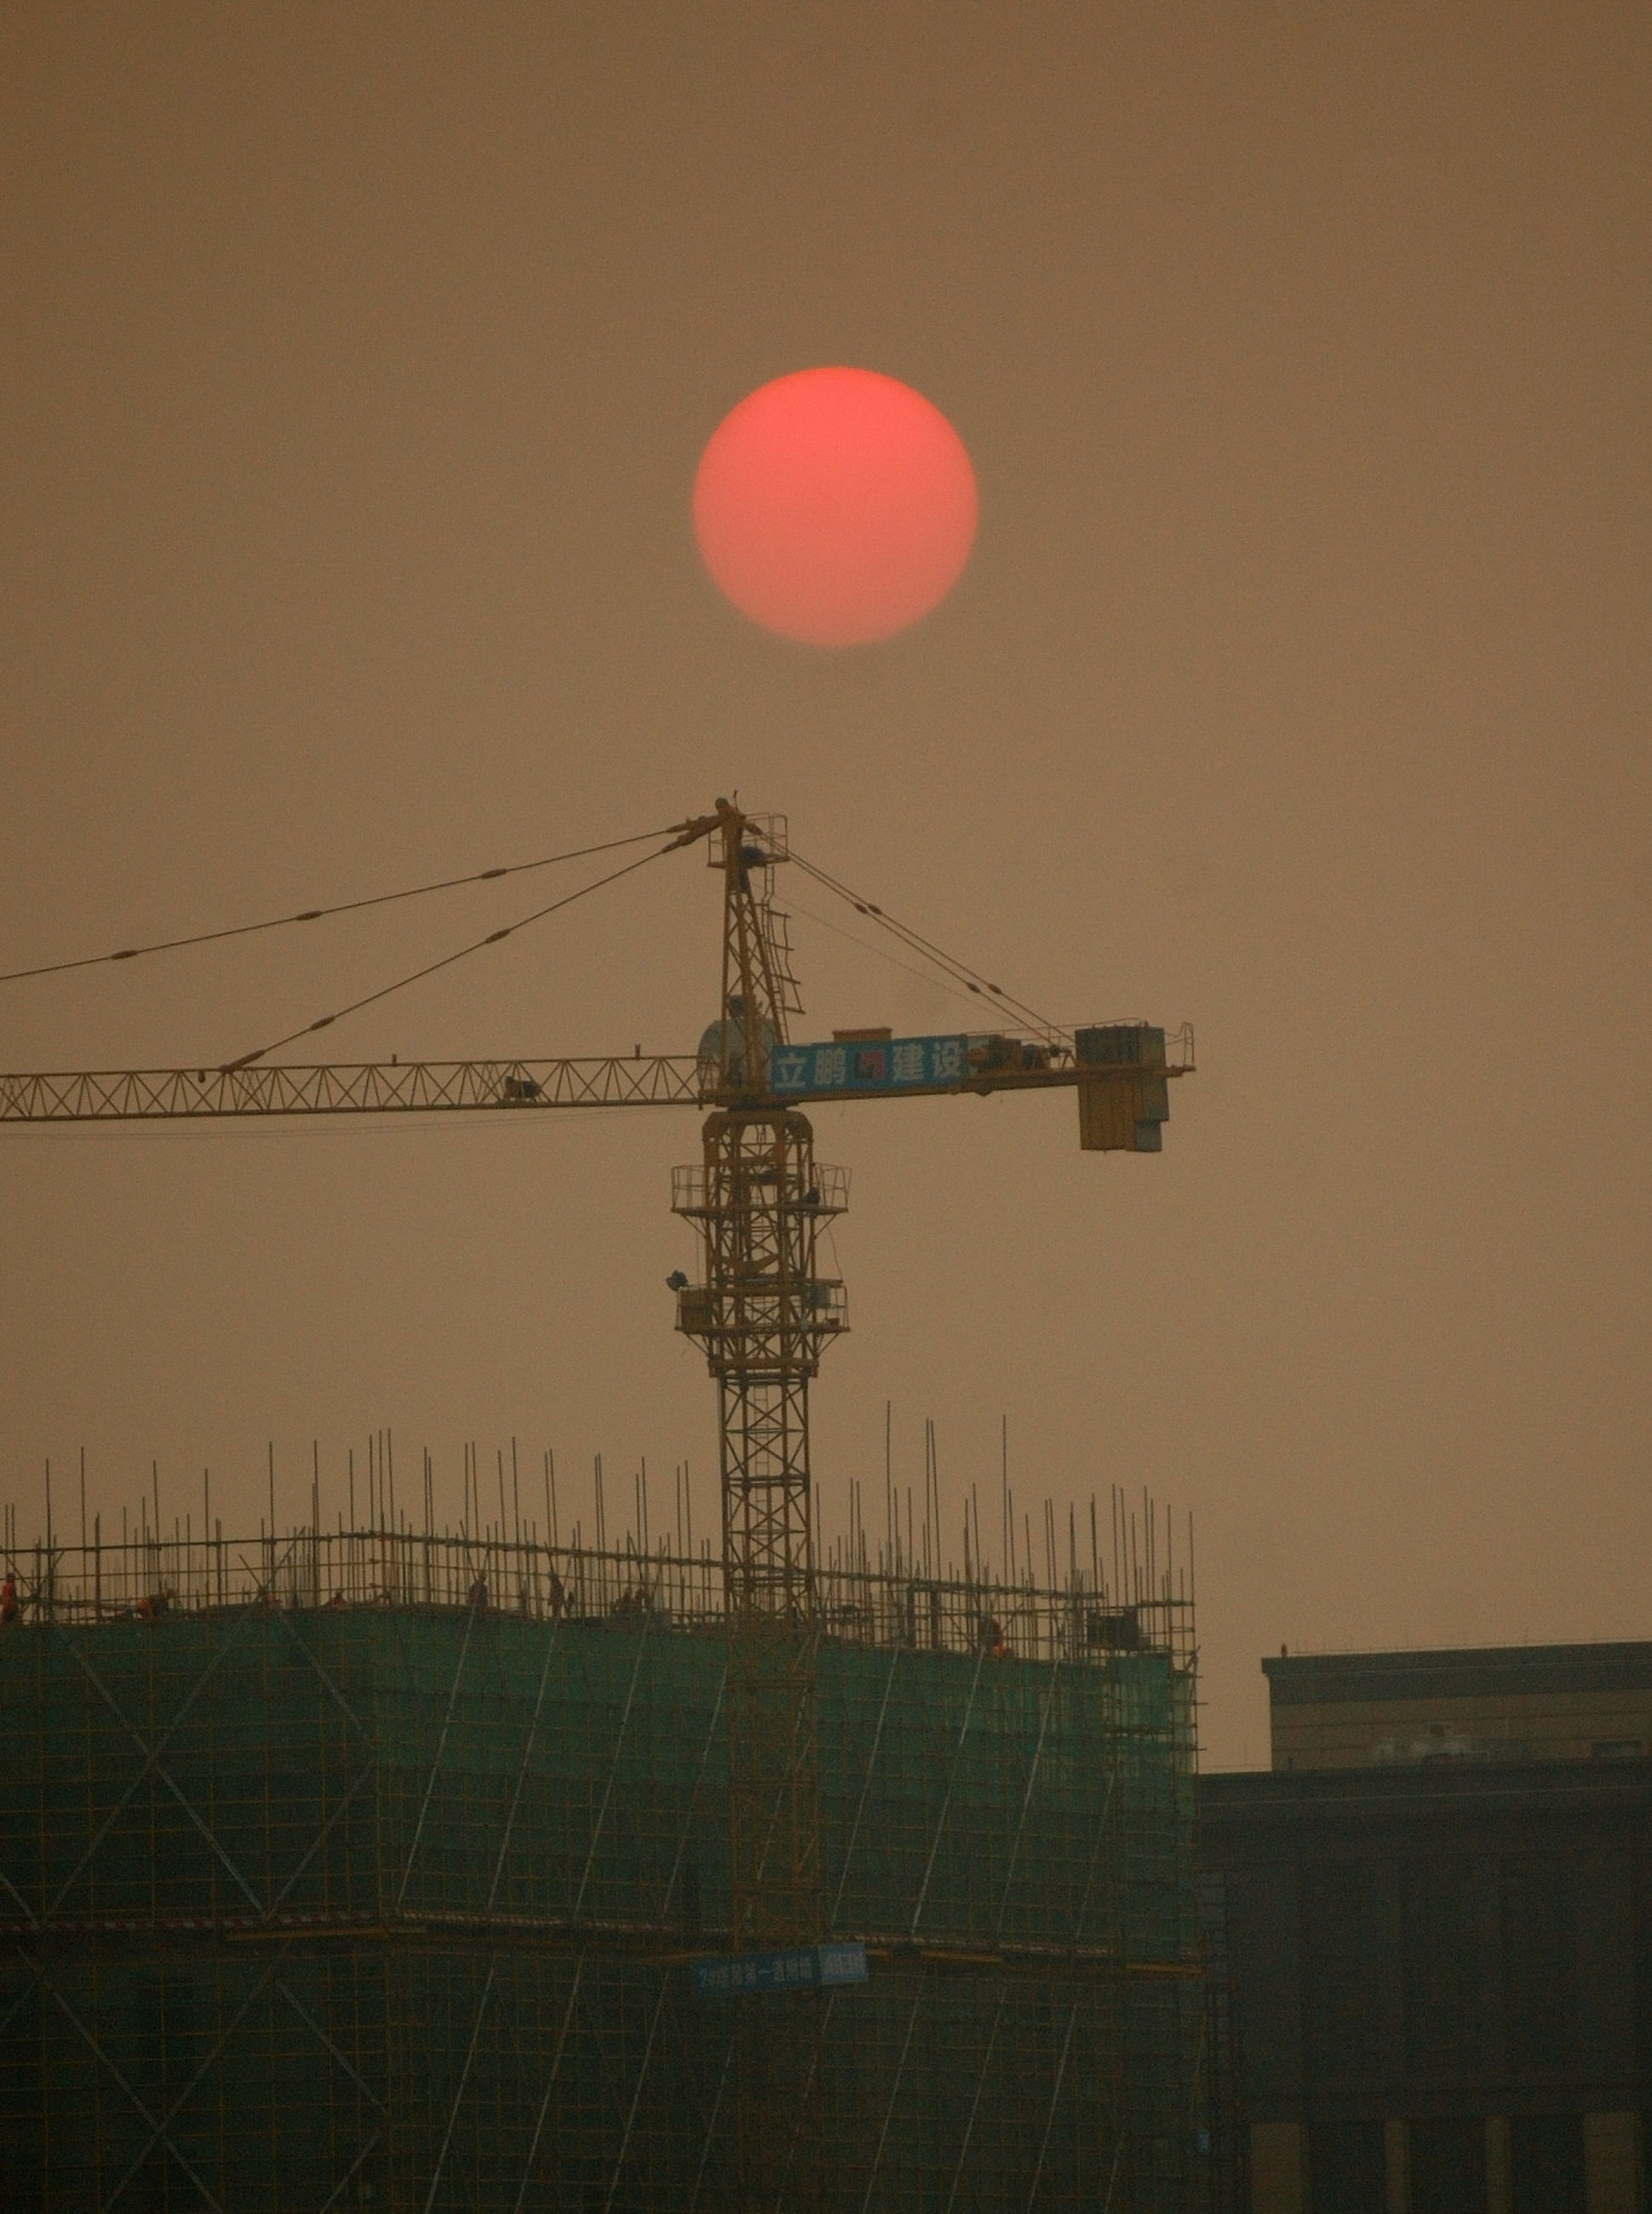 sky, architecture, built structure, sunset, nature, technology, no people, electricity, evening, light, industry, outdoors, moon, machinery, lighting, dusk, construction industry, building exterior, line, crane - construction machinery, transmission tower, silhouette, low angle view